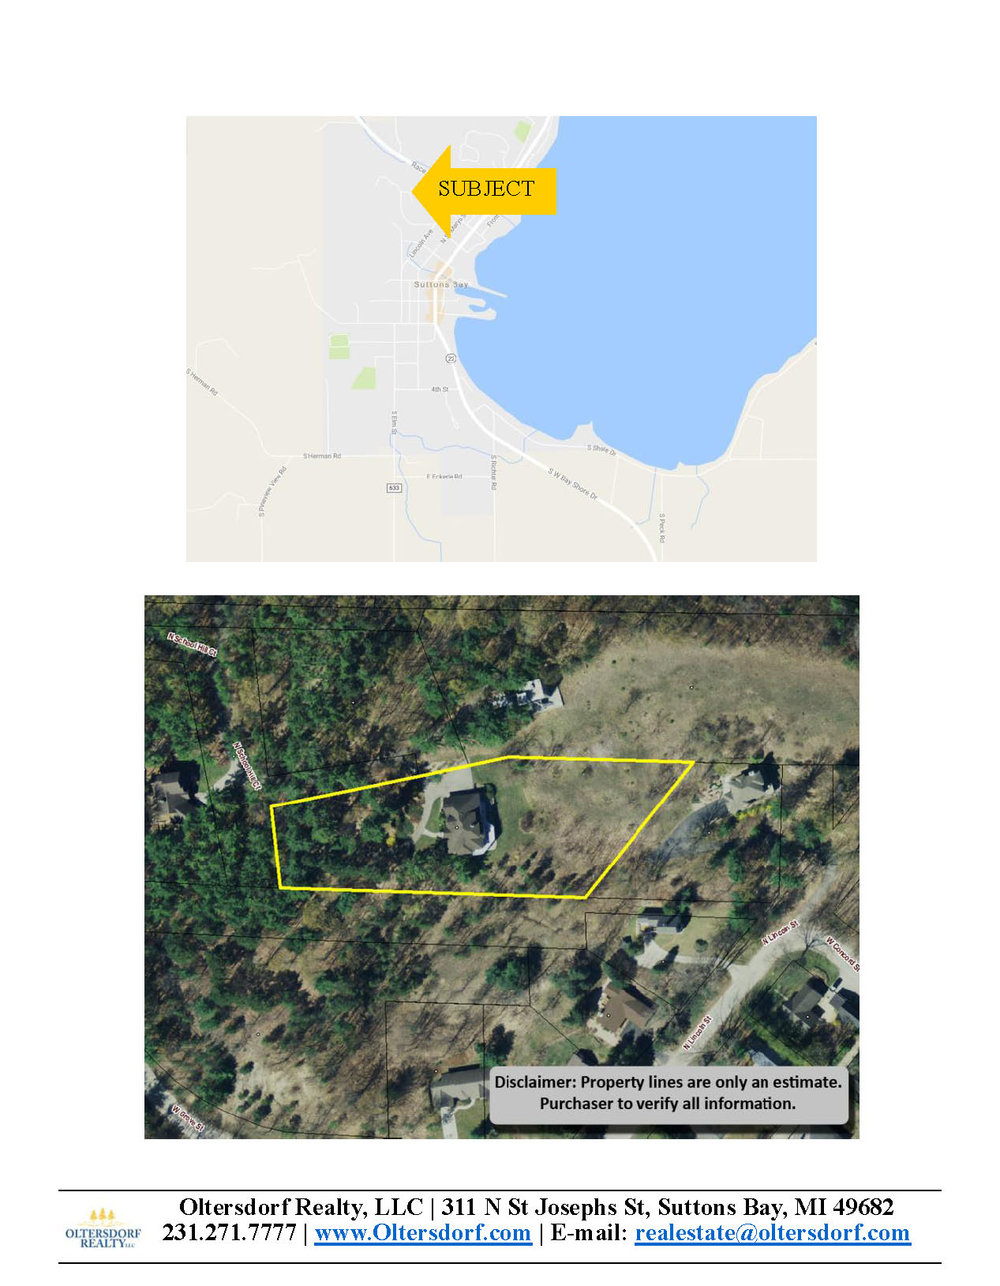 424 N School Hill Court, Suttons Bay real estate for sale by Oltersdorf Realty LLC - Information packet (11).jpg